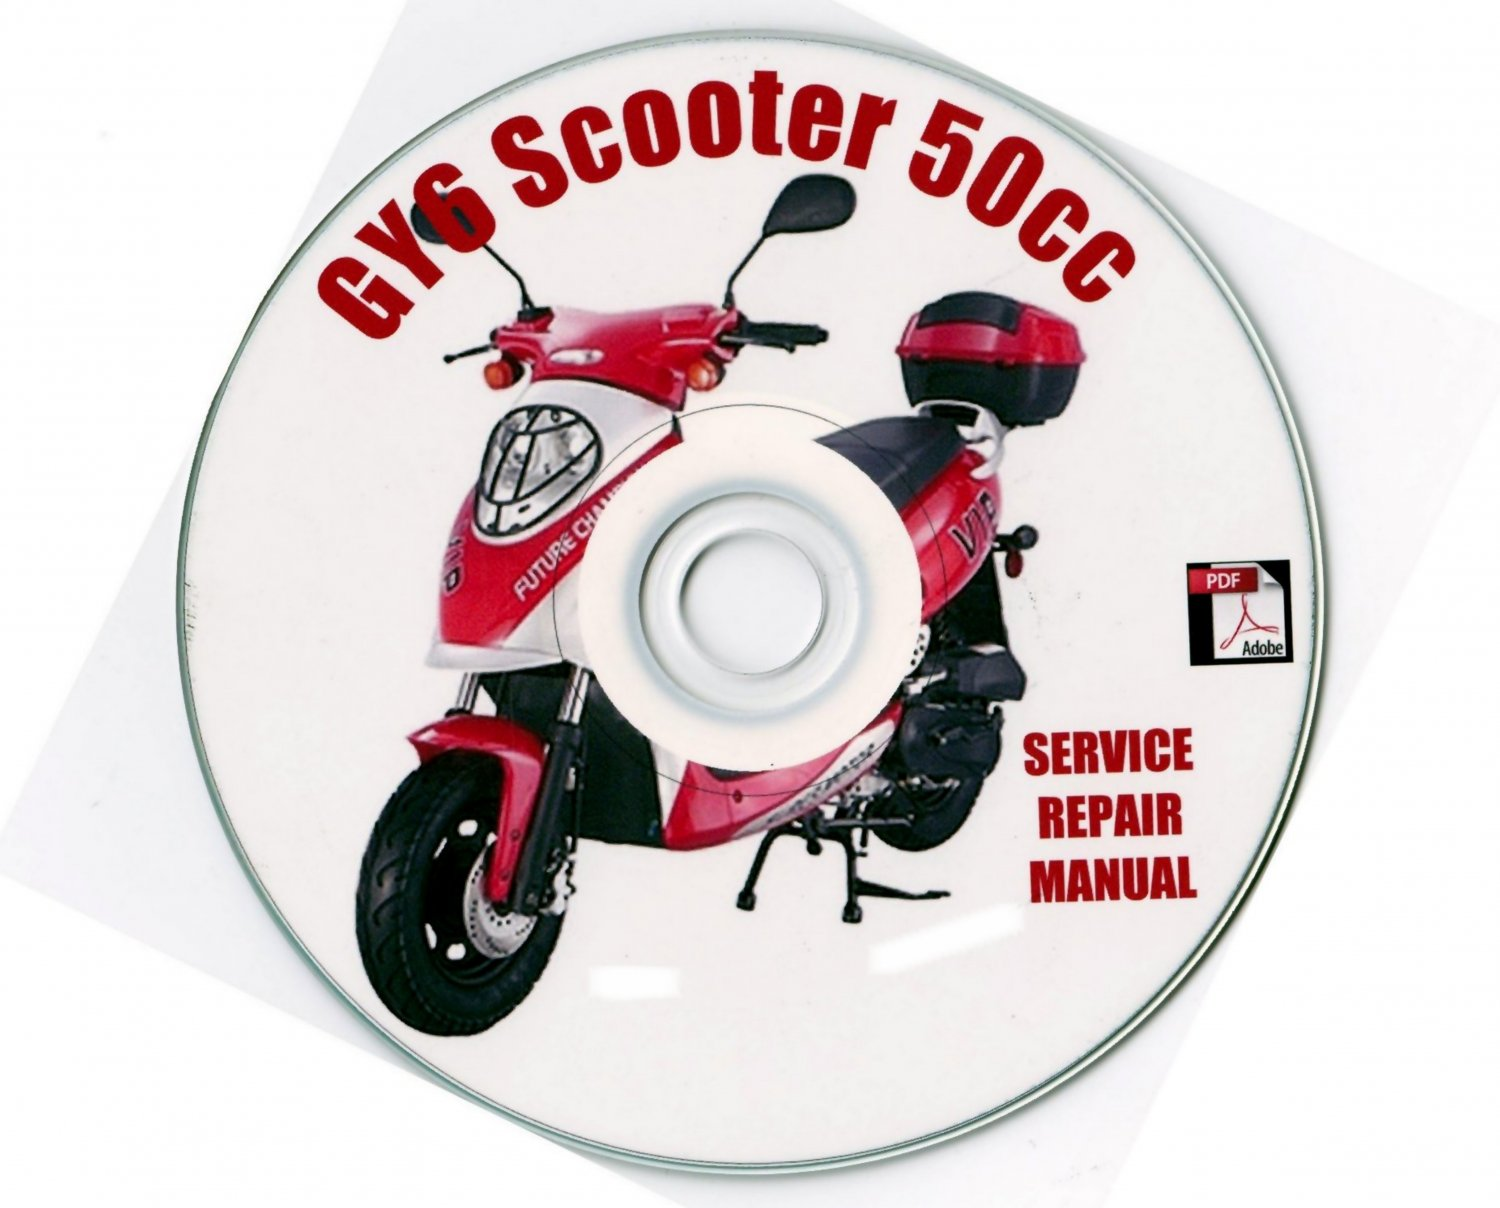 hight resolution of scooter wildfire sunl znen jinlun madami benelli 50cc gy6 service wildfire scooter diagram